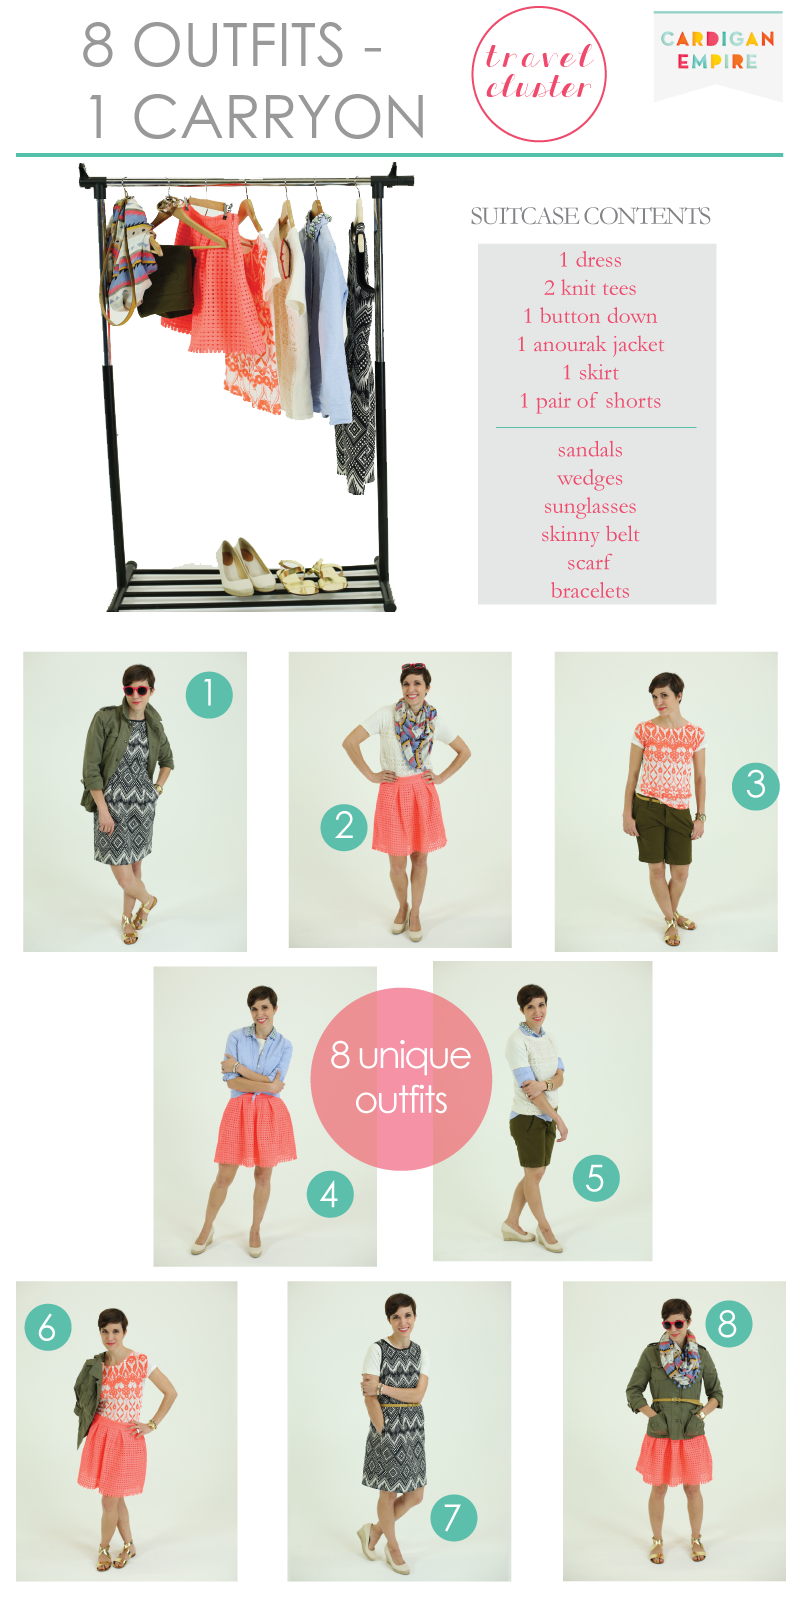 a80d4ad6f99 Vacation Special  How to Pack 8 Outfits in 1 Carryon